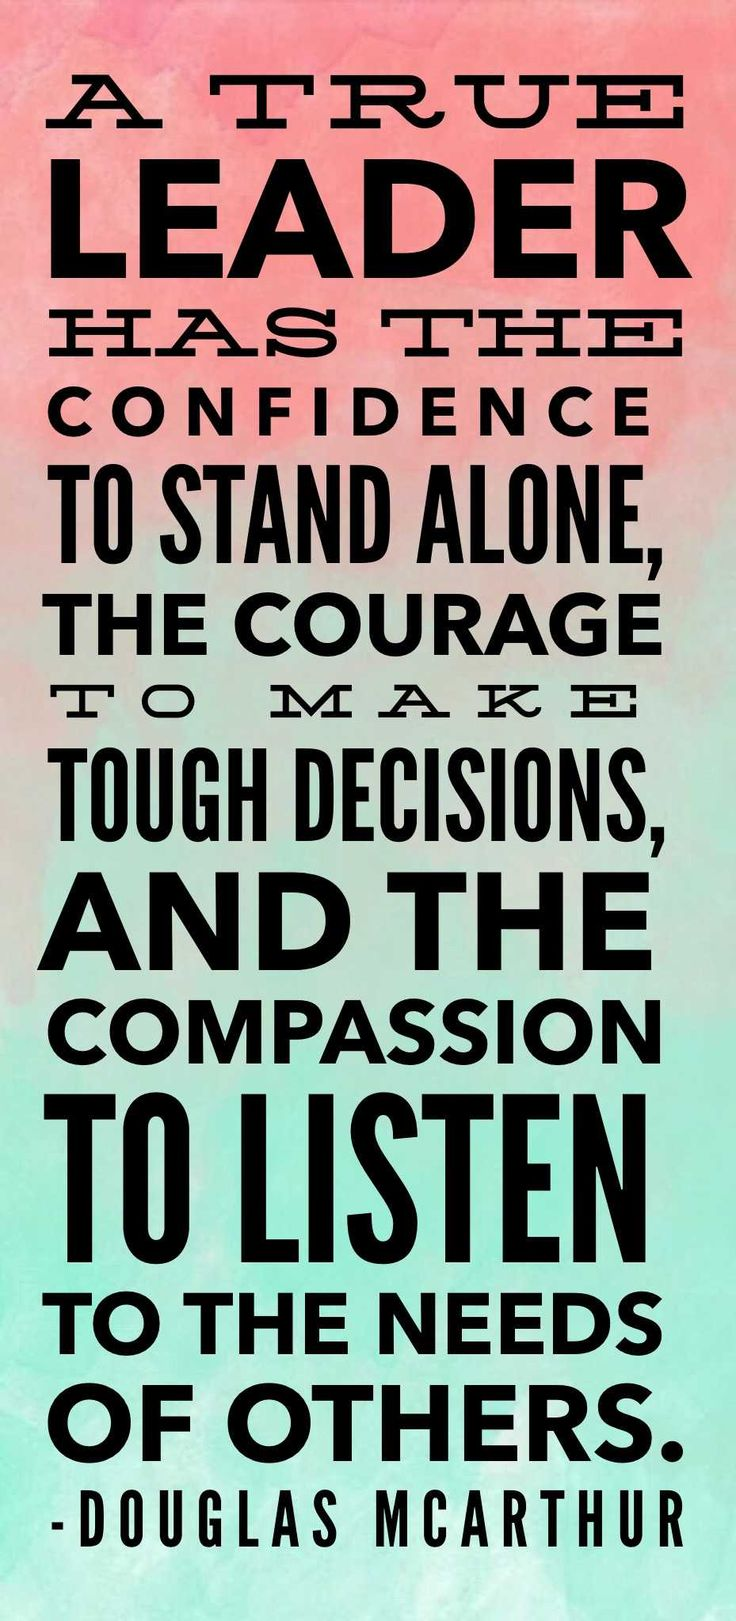 A true leader has the confidence to stand alone, the courage to make tough decisions, and the compassion to listen to the needs of others. - Douglas MacArthur